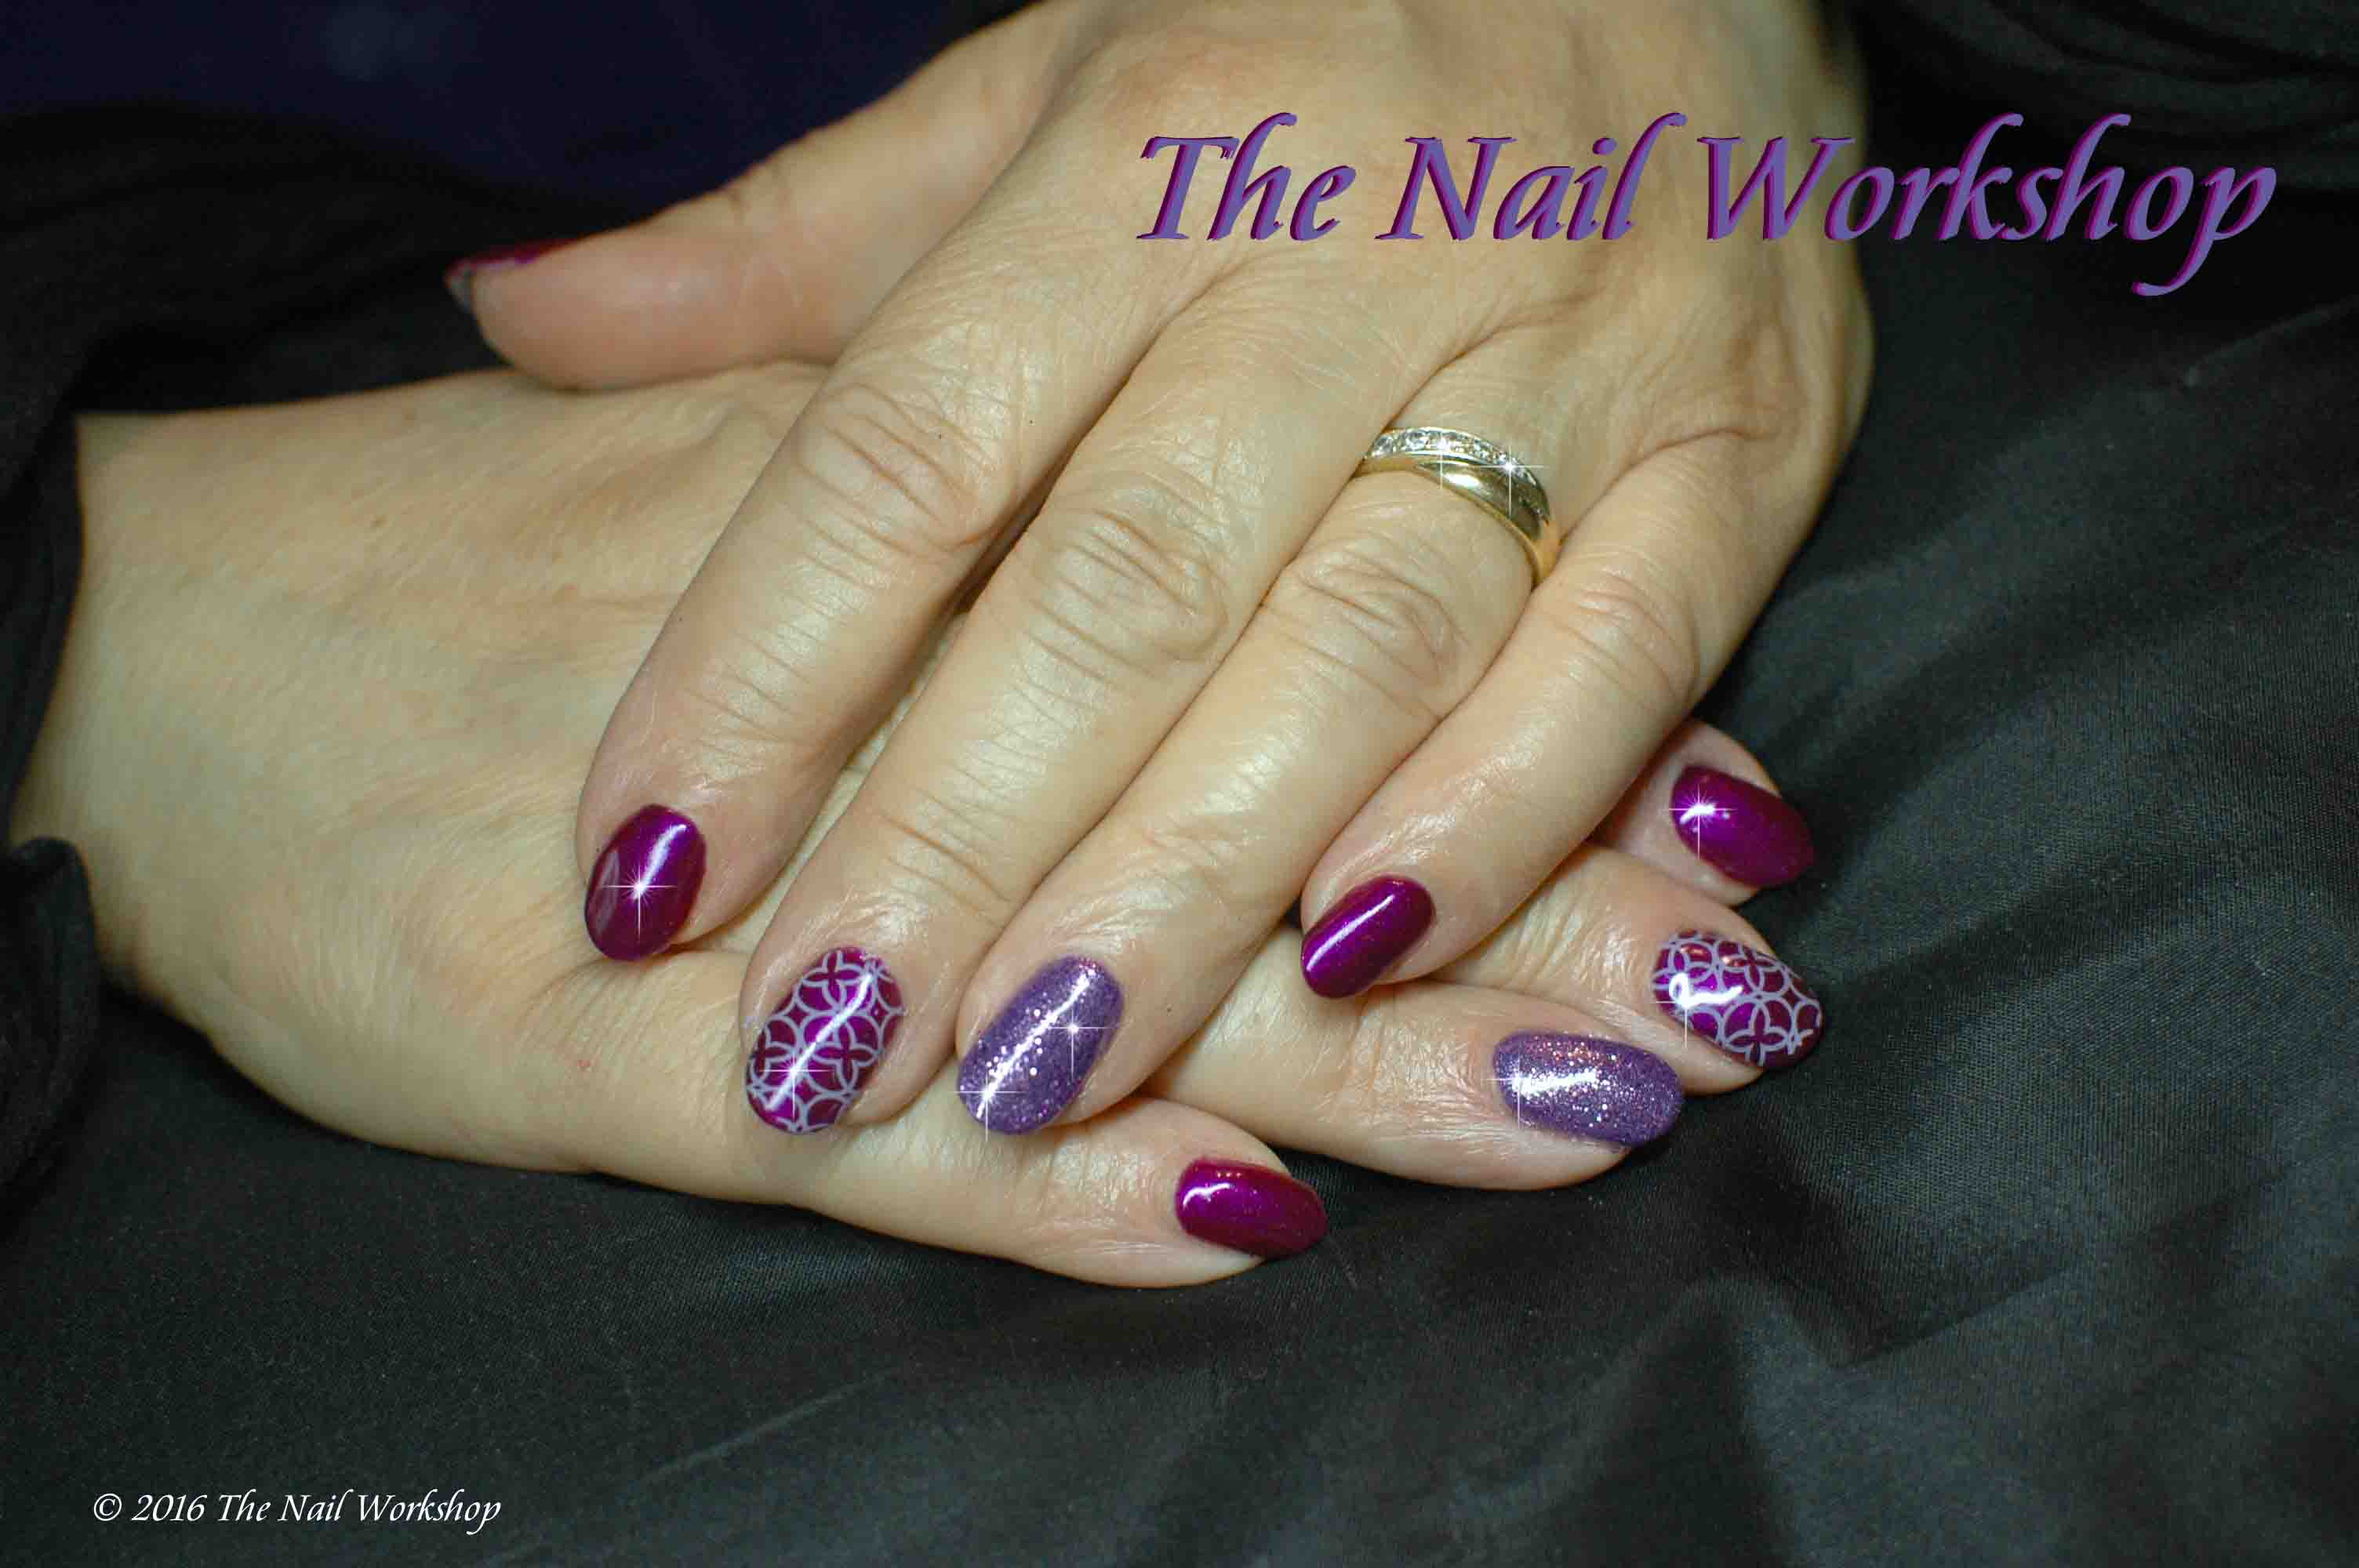 Gelish Berry Buttoned Up with Lilac Glitter and Stamping